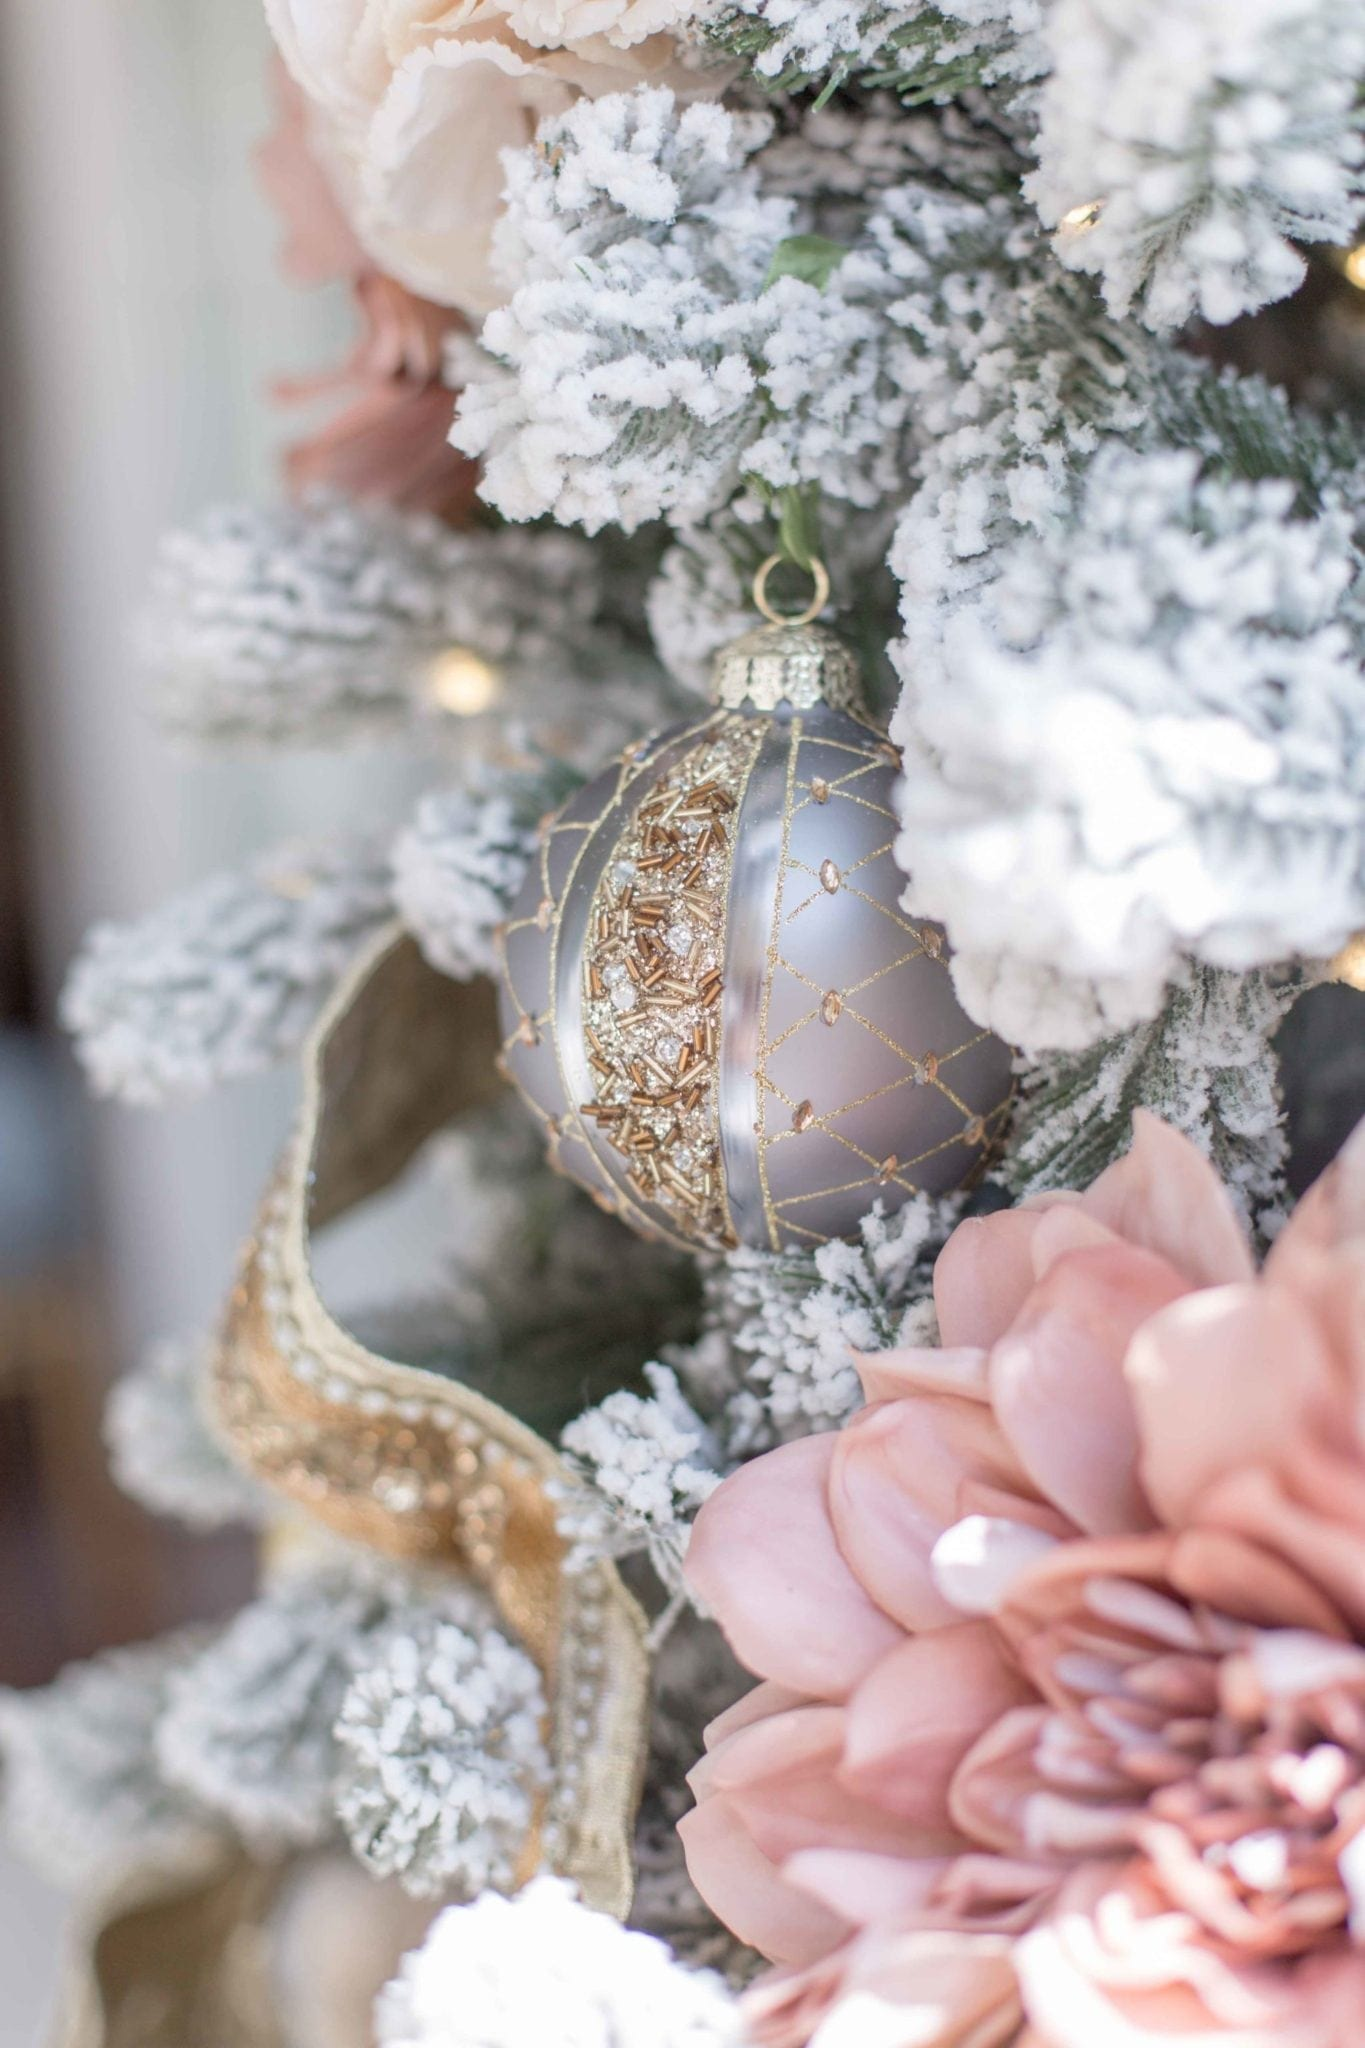 Frontgate ornaments from 2018. Gorgeous collection of gray and blue and gold ornaments from the Frontgate holiday decor collection.